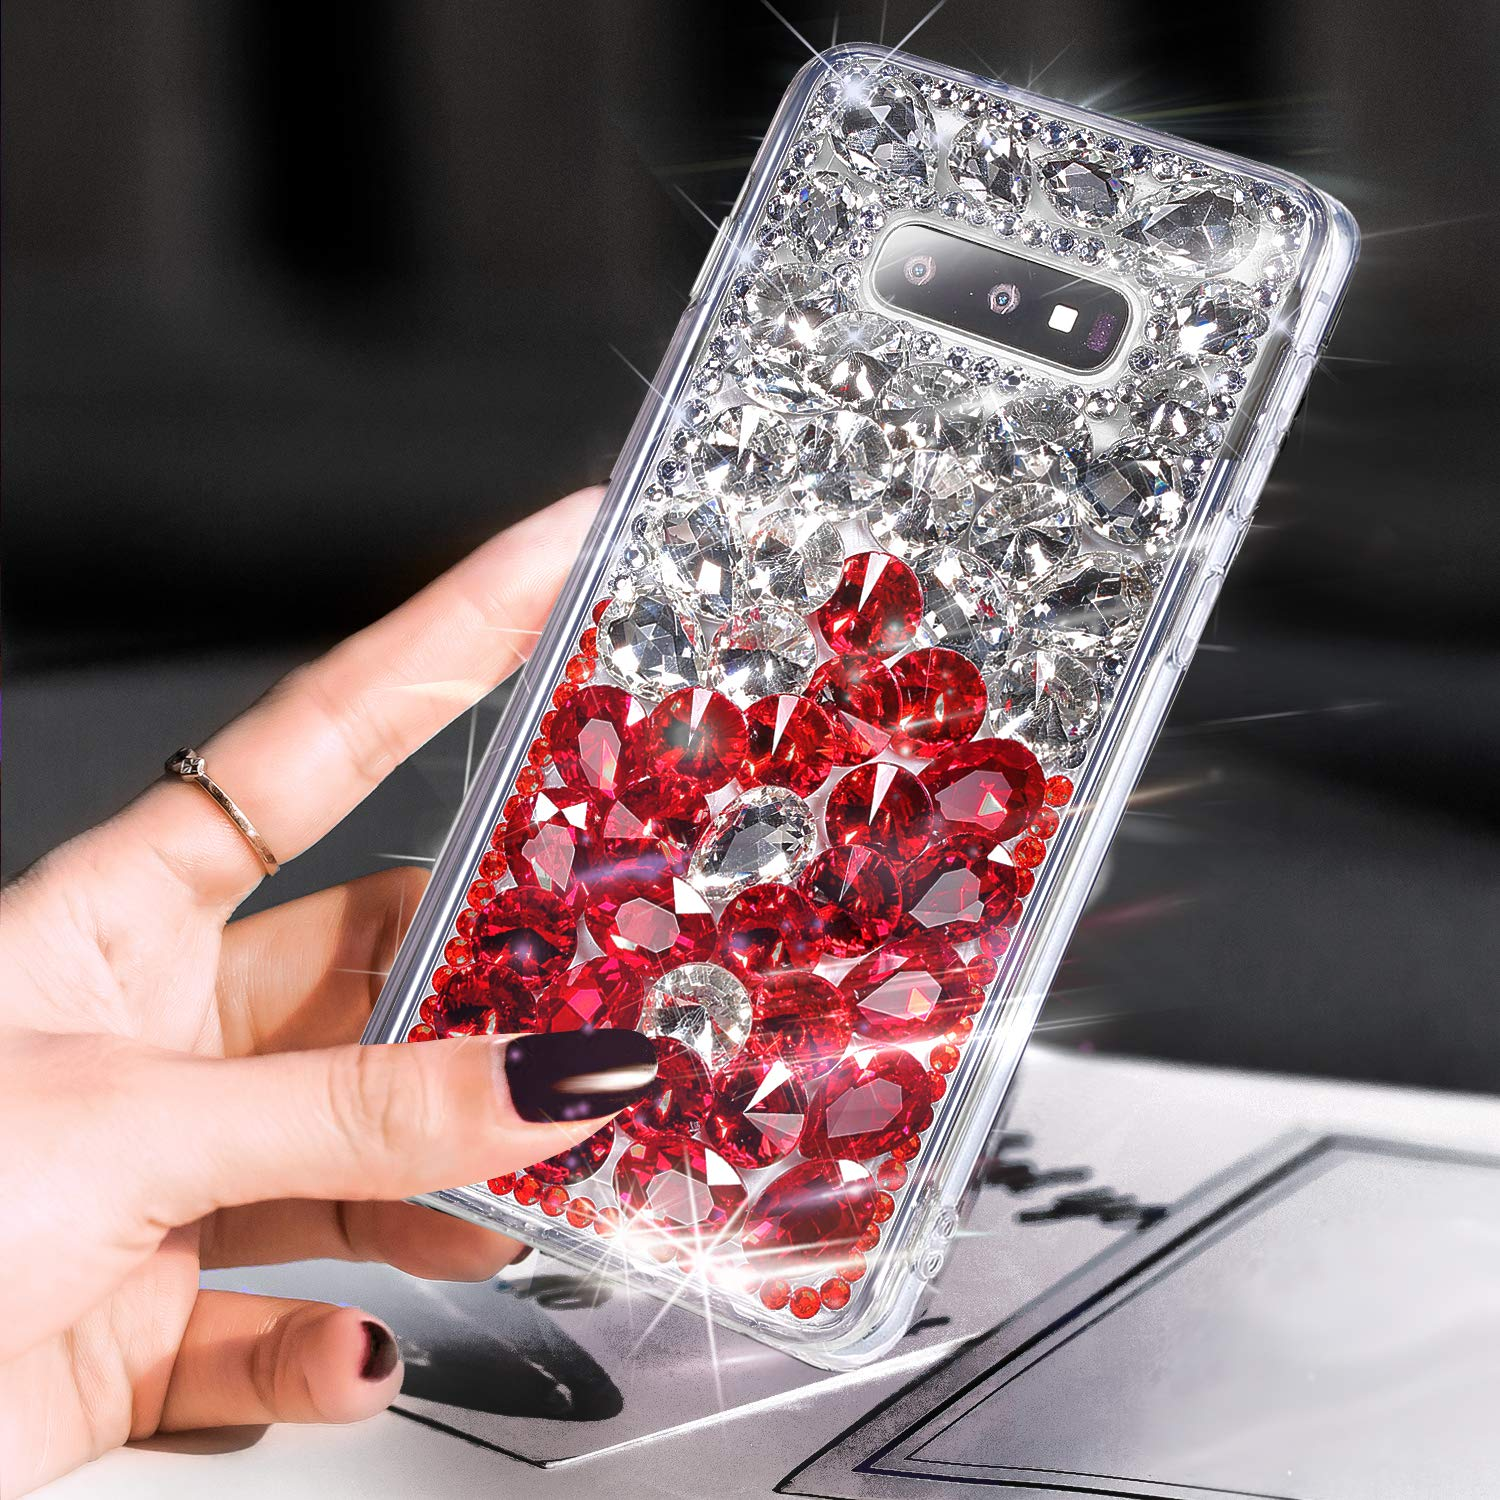 Galaxy S10e Case,Galaxy S10e Diamond Case Cover,ikasus 3D Handmade Bling Rhinestone Diamonds Luxury Sparkle Rhinestones Case Full Crystals Bling Diamond Case Cover for Galaxy S10e,Red+Silver by ikasus